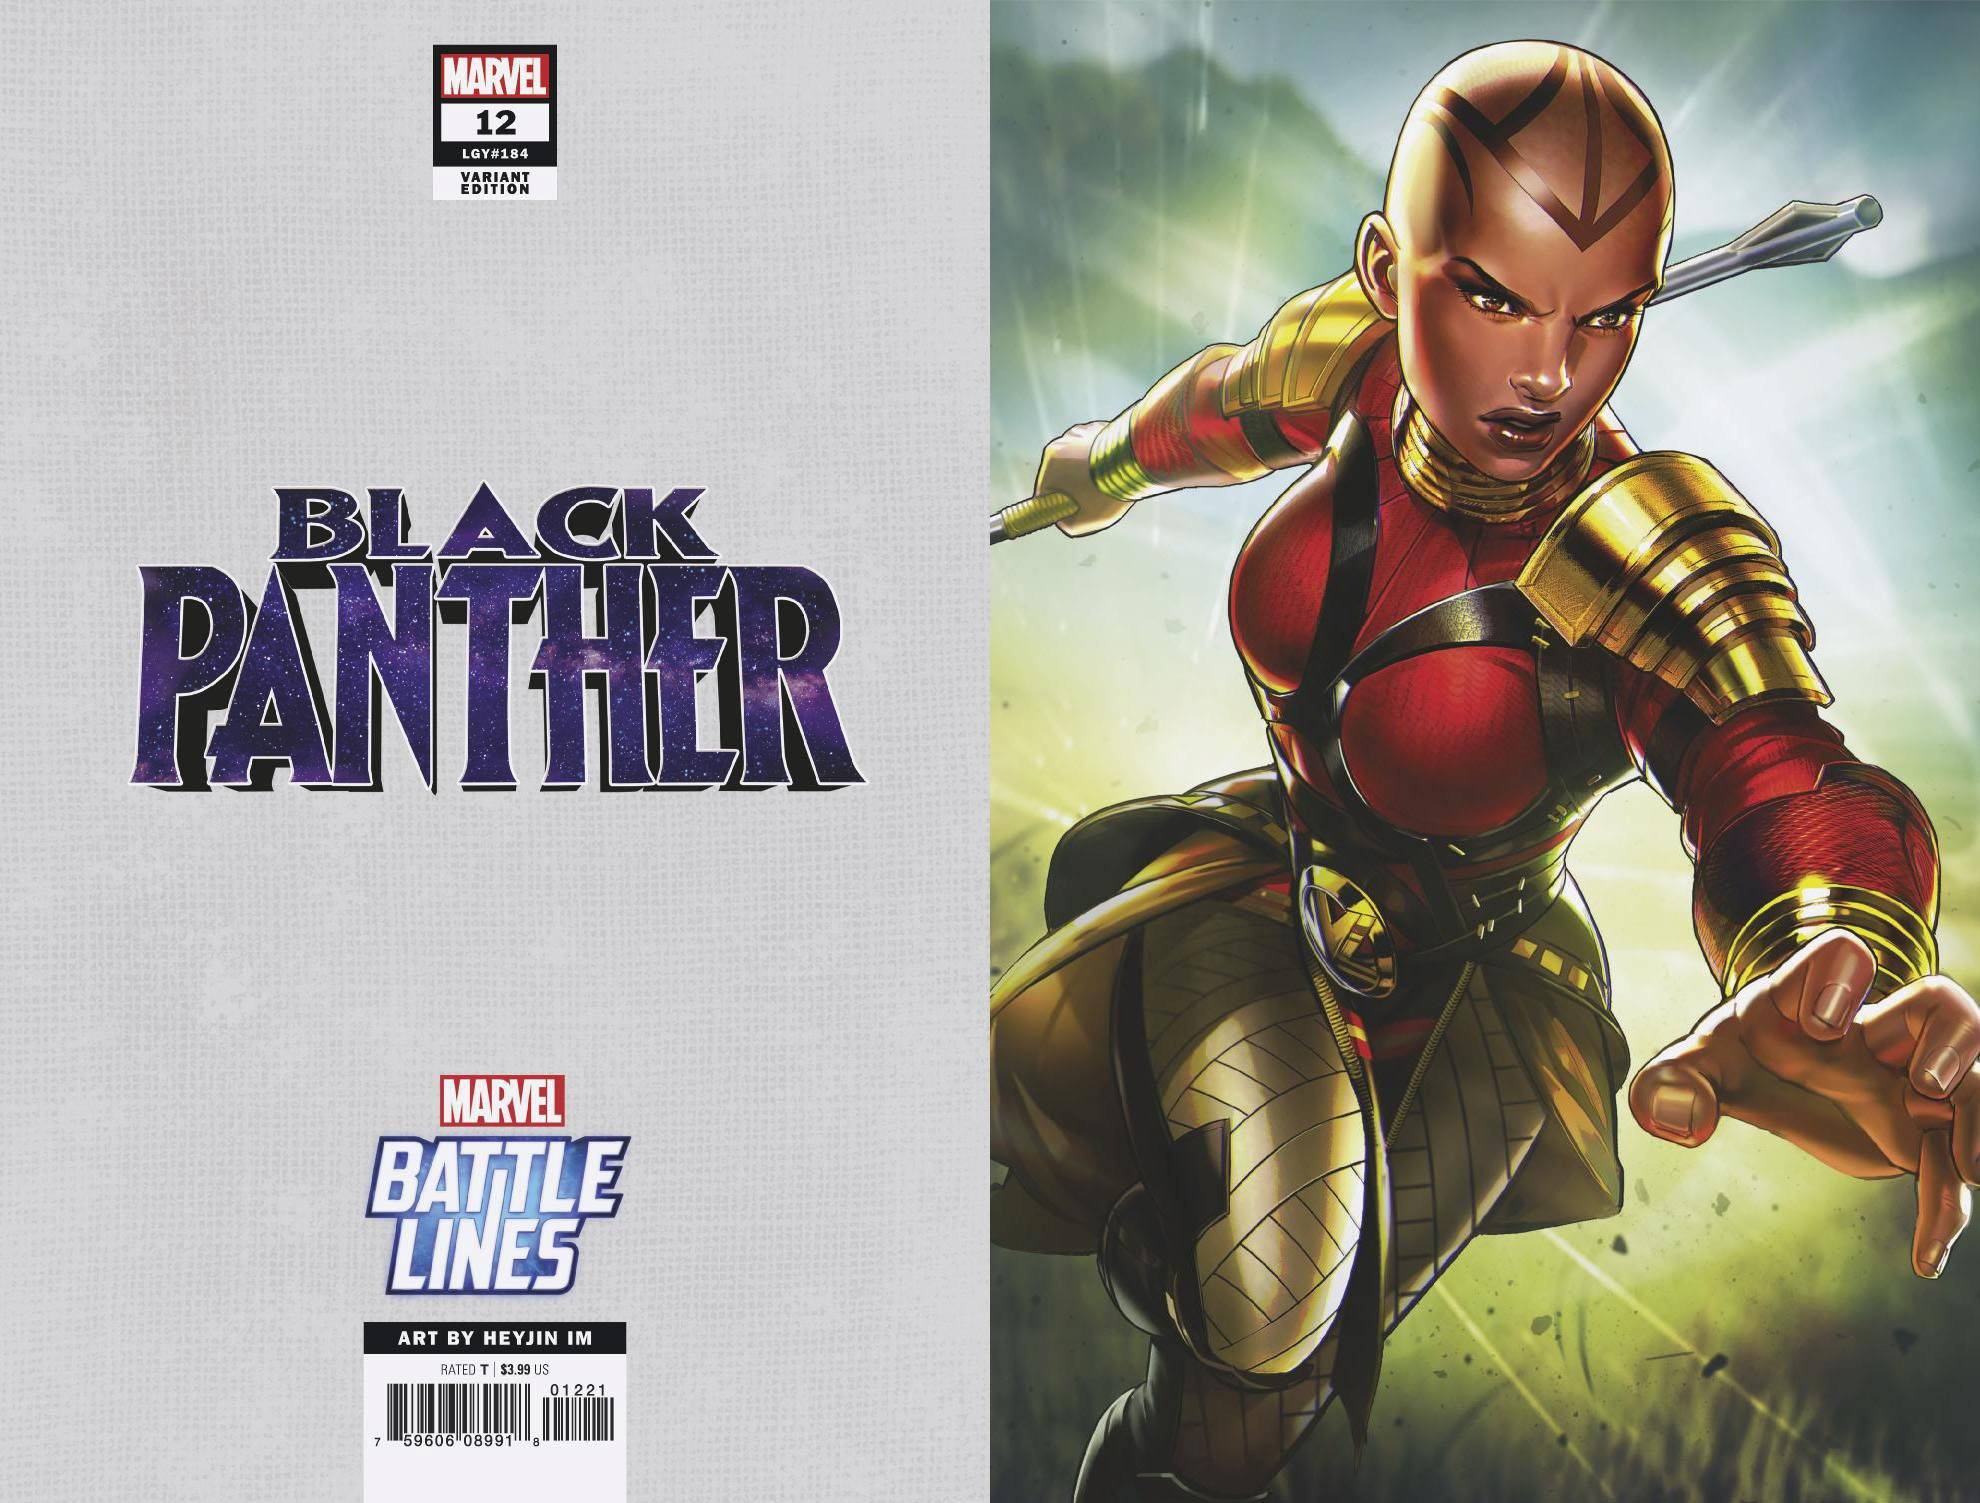 BLACK PANTHER 12 HEYJIN IM MARVEL BATTLE LINES VAR.jpg